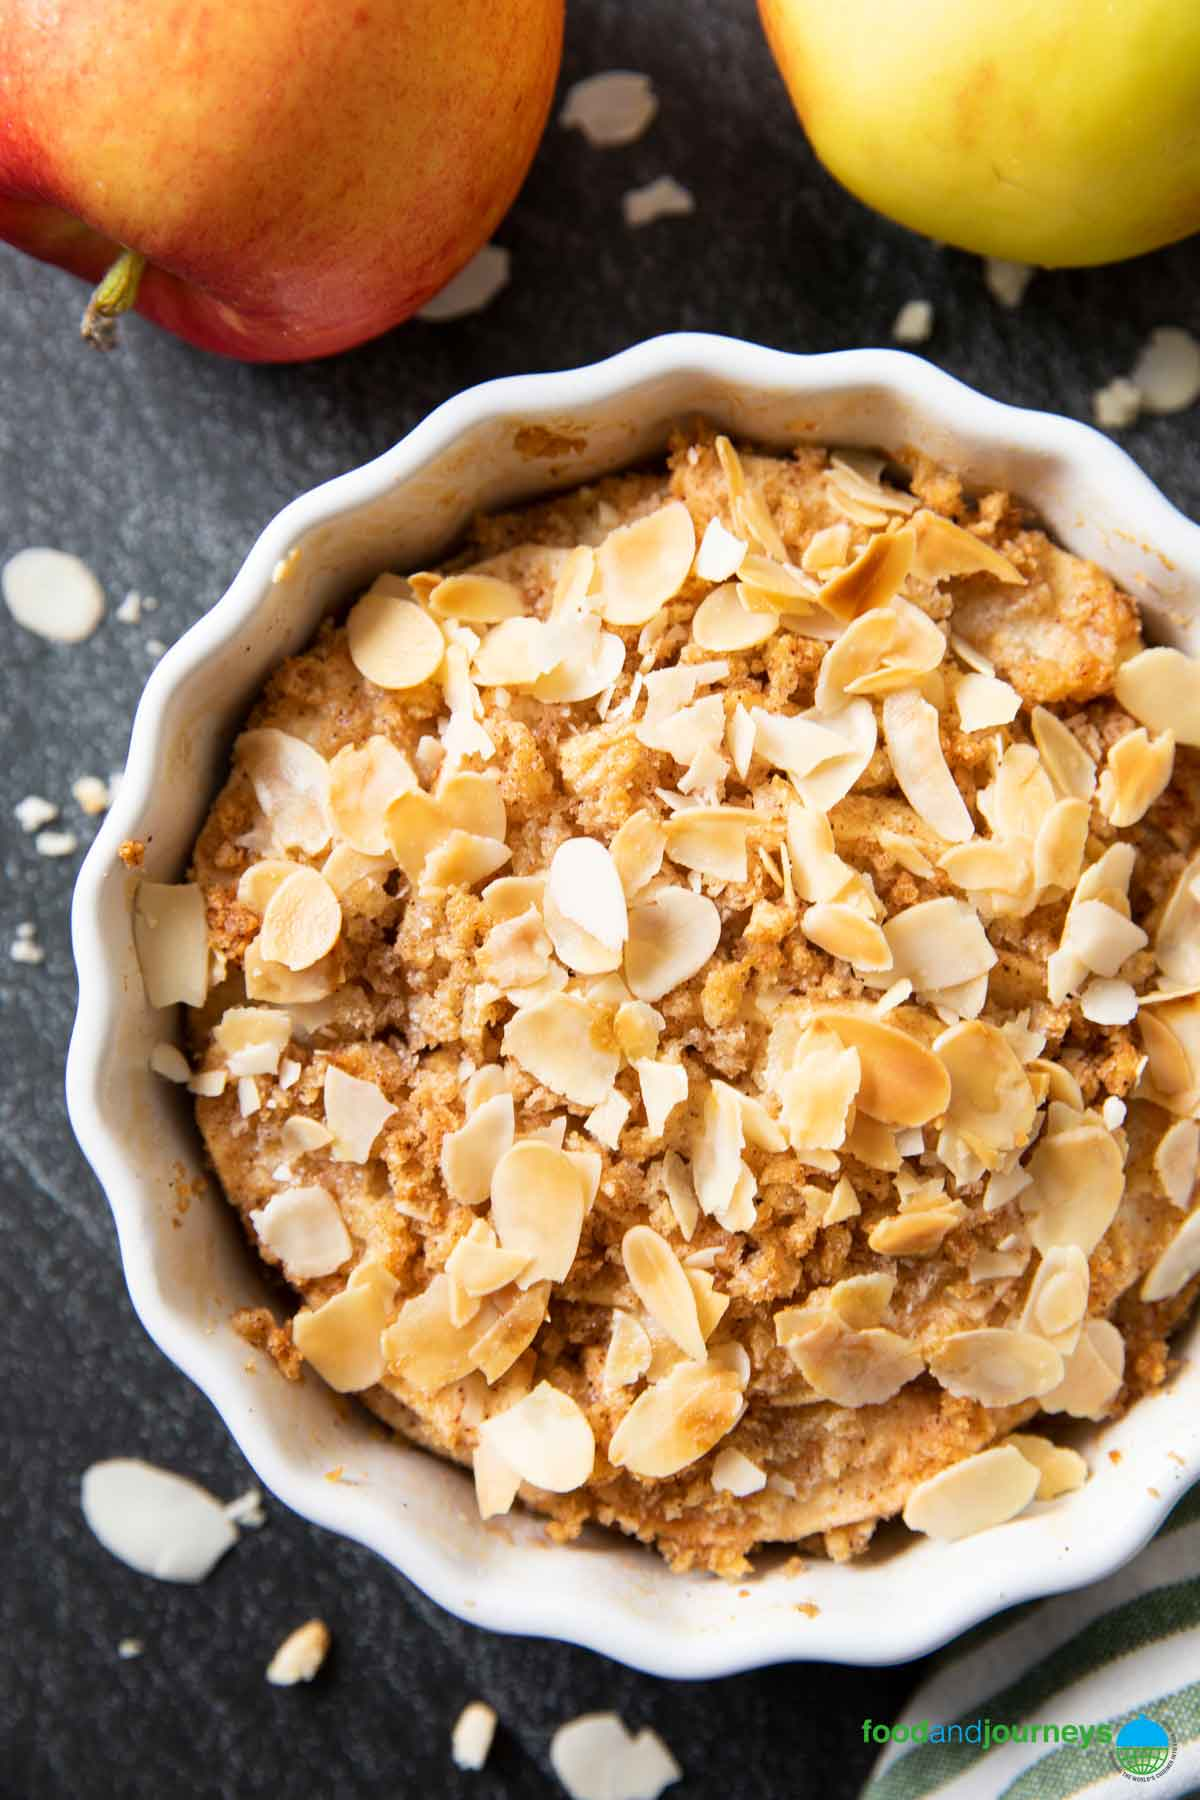 Swedish Apple Crumble, with crunchy almond slices on top.